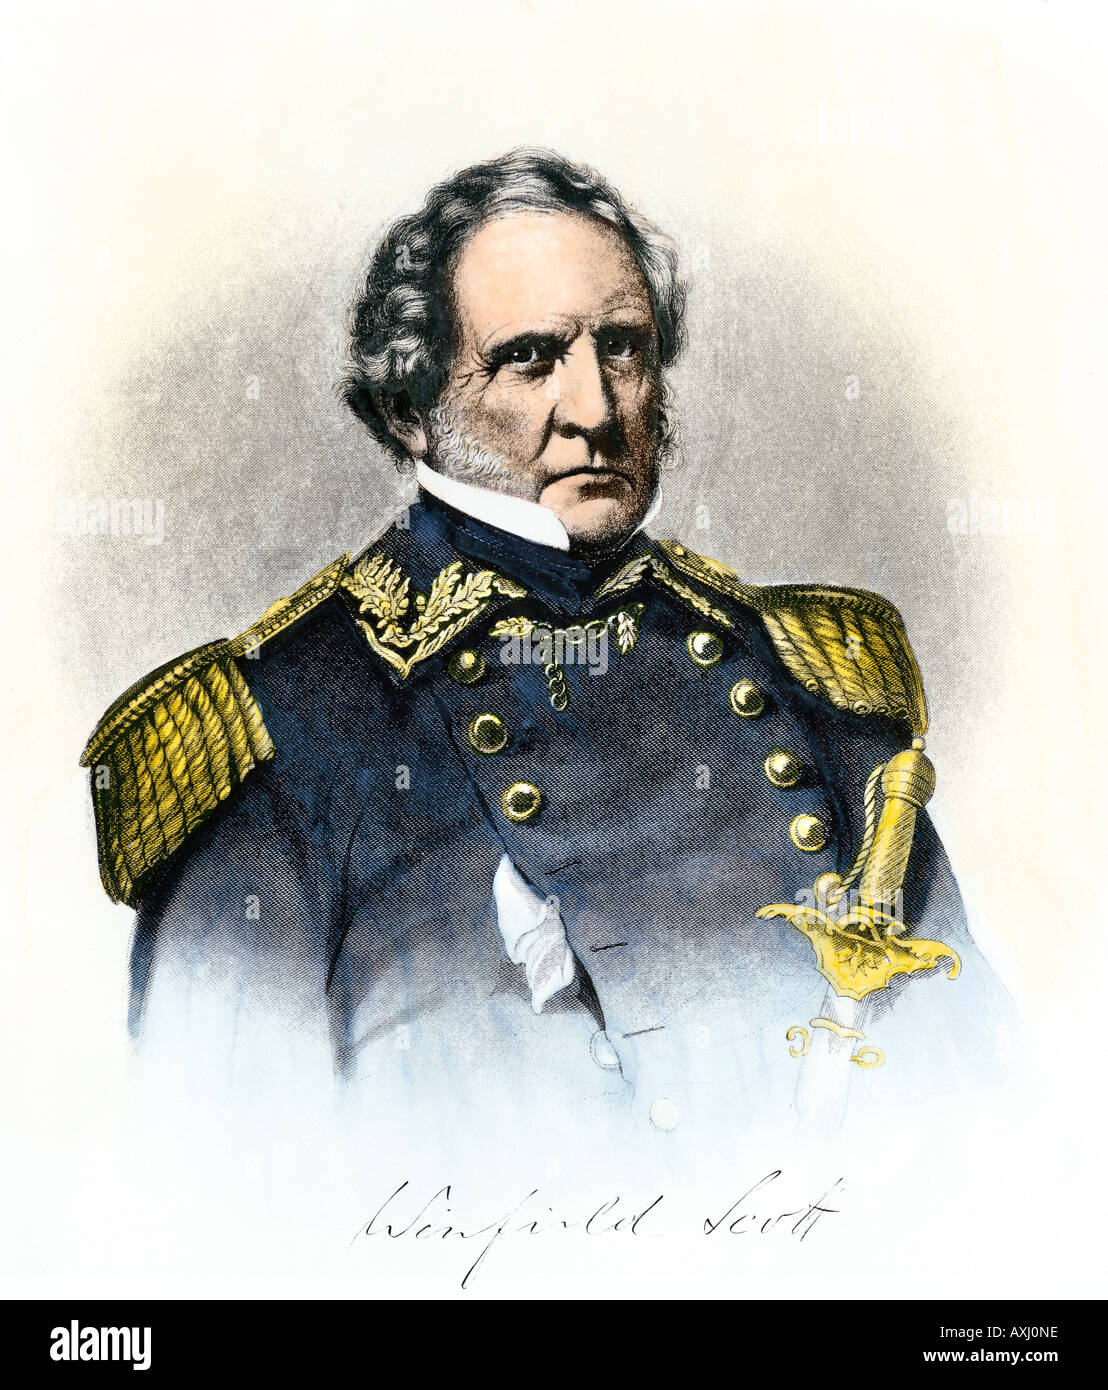 General Winfield Scott portrait with signature. Hand-colored steel engraving - Stock Image